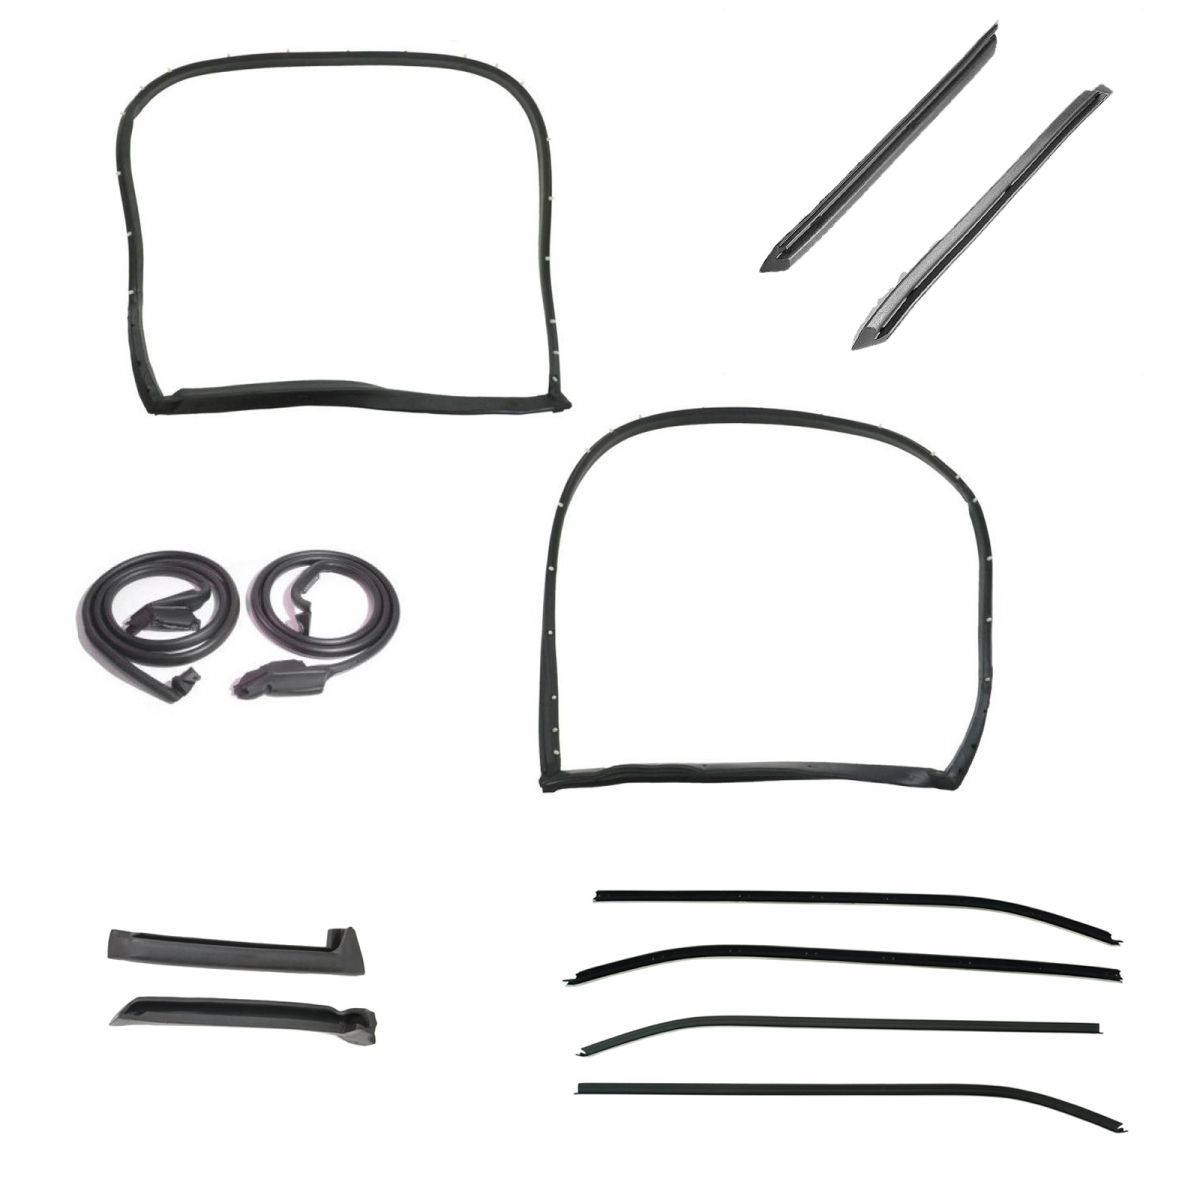 Weatherstrip Seal Kit 12 Piece Set for 73-77 Chevy Corvette Coupe w// T-Top New